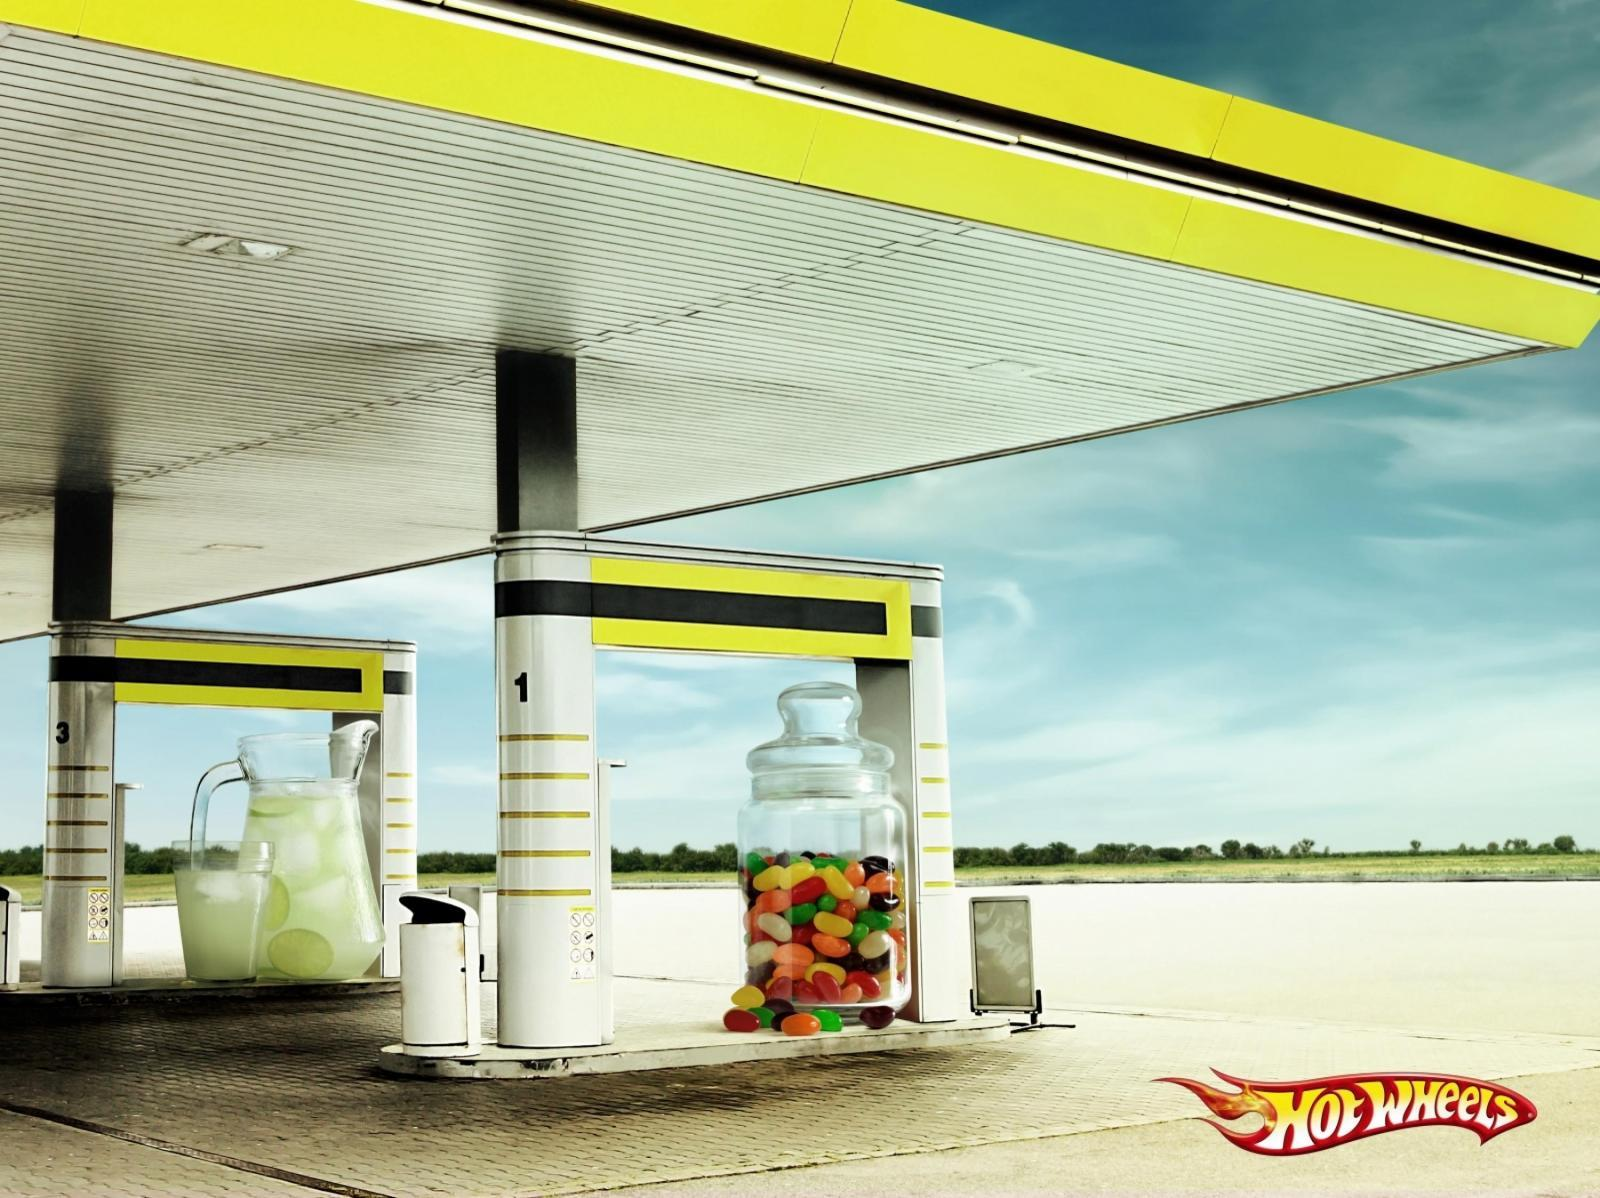 Hot Wheels Print Ad -  Lemonade and Candies